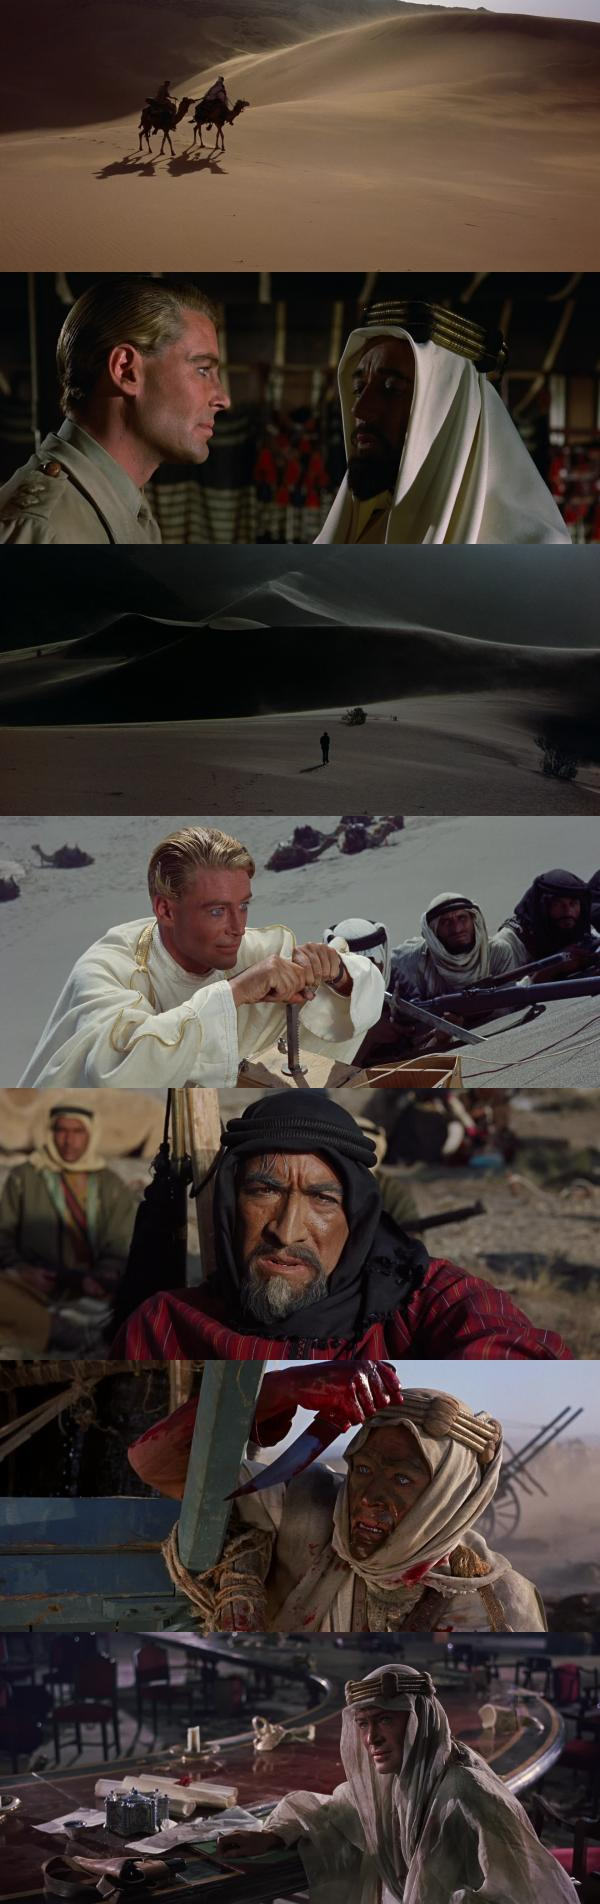 http://watershade.net/public/lawrence-of-arabia.jpg